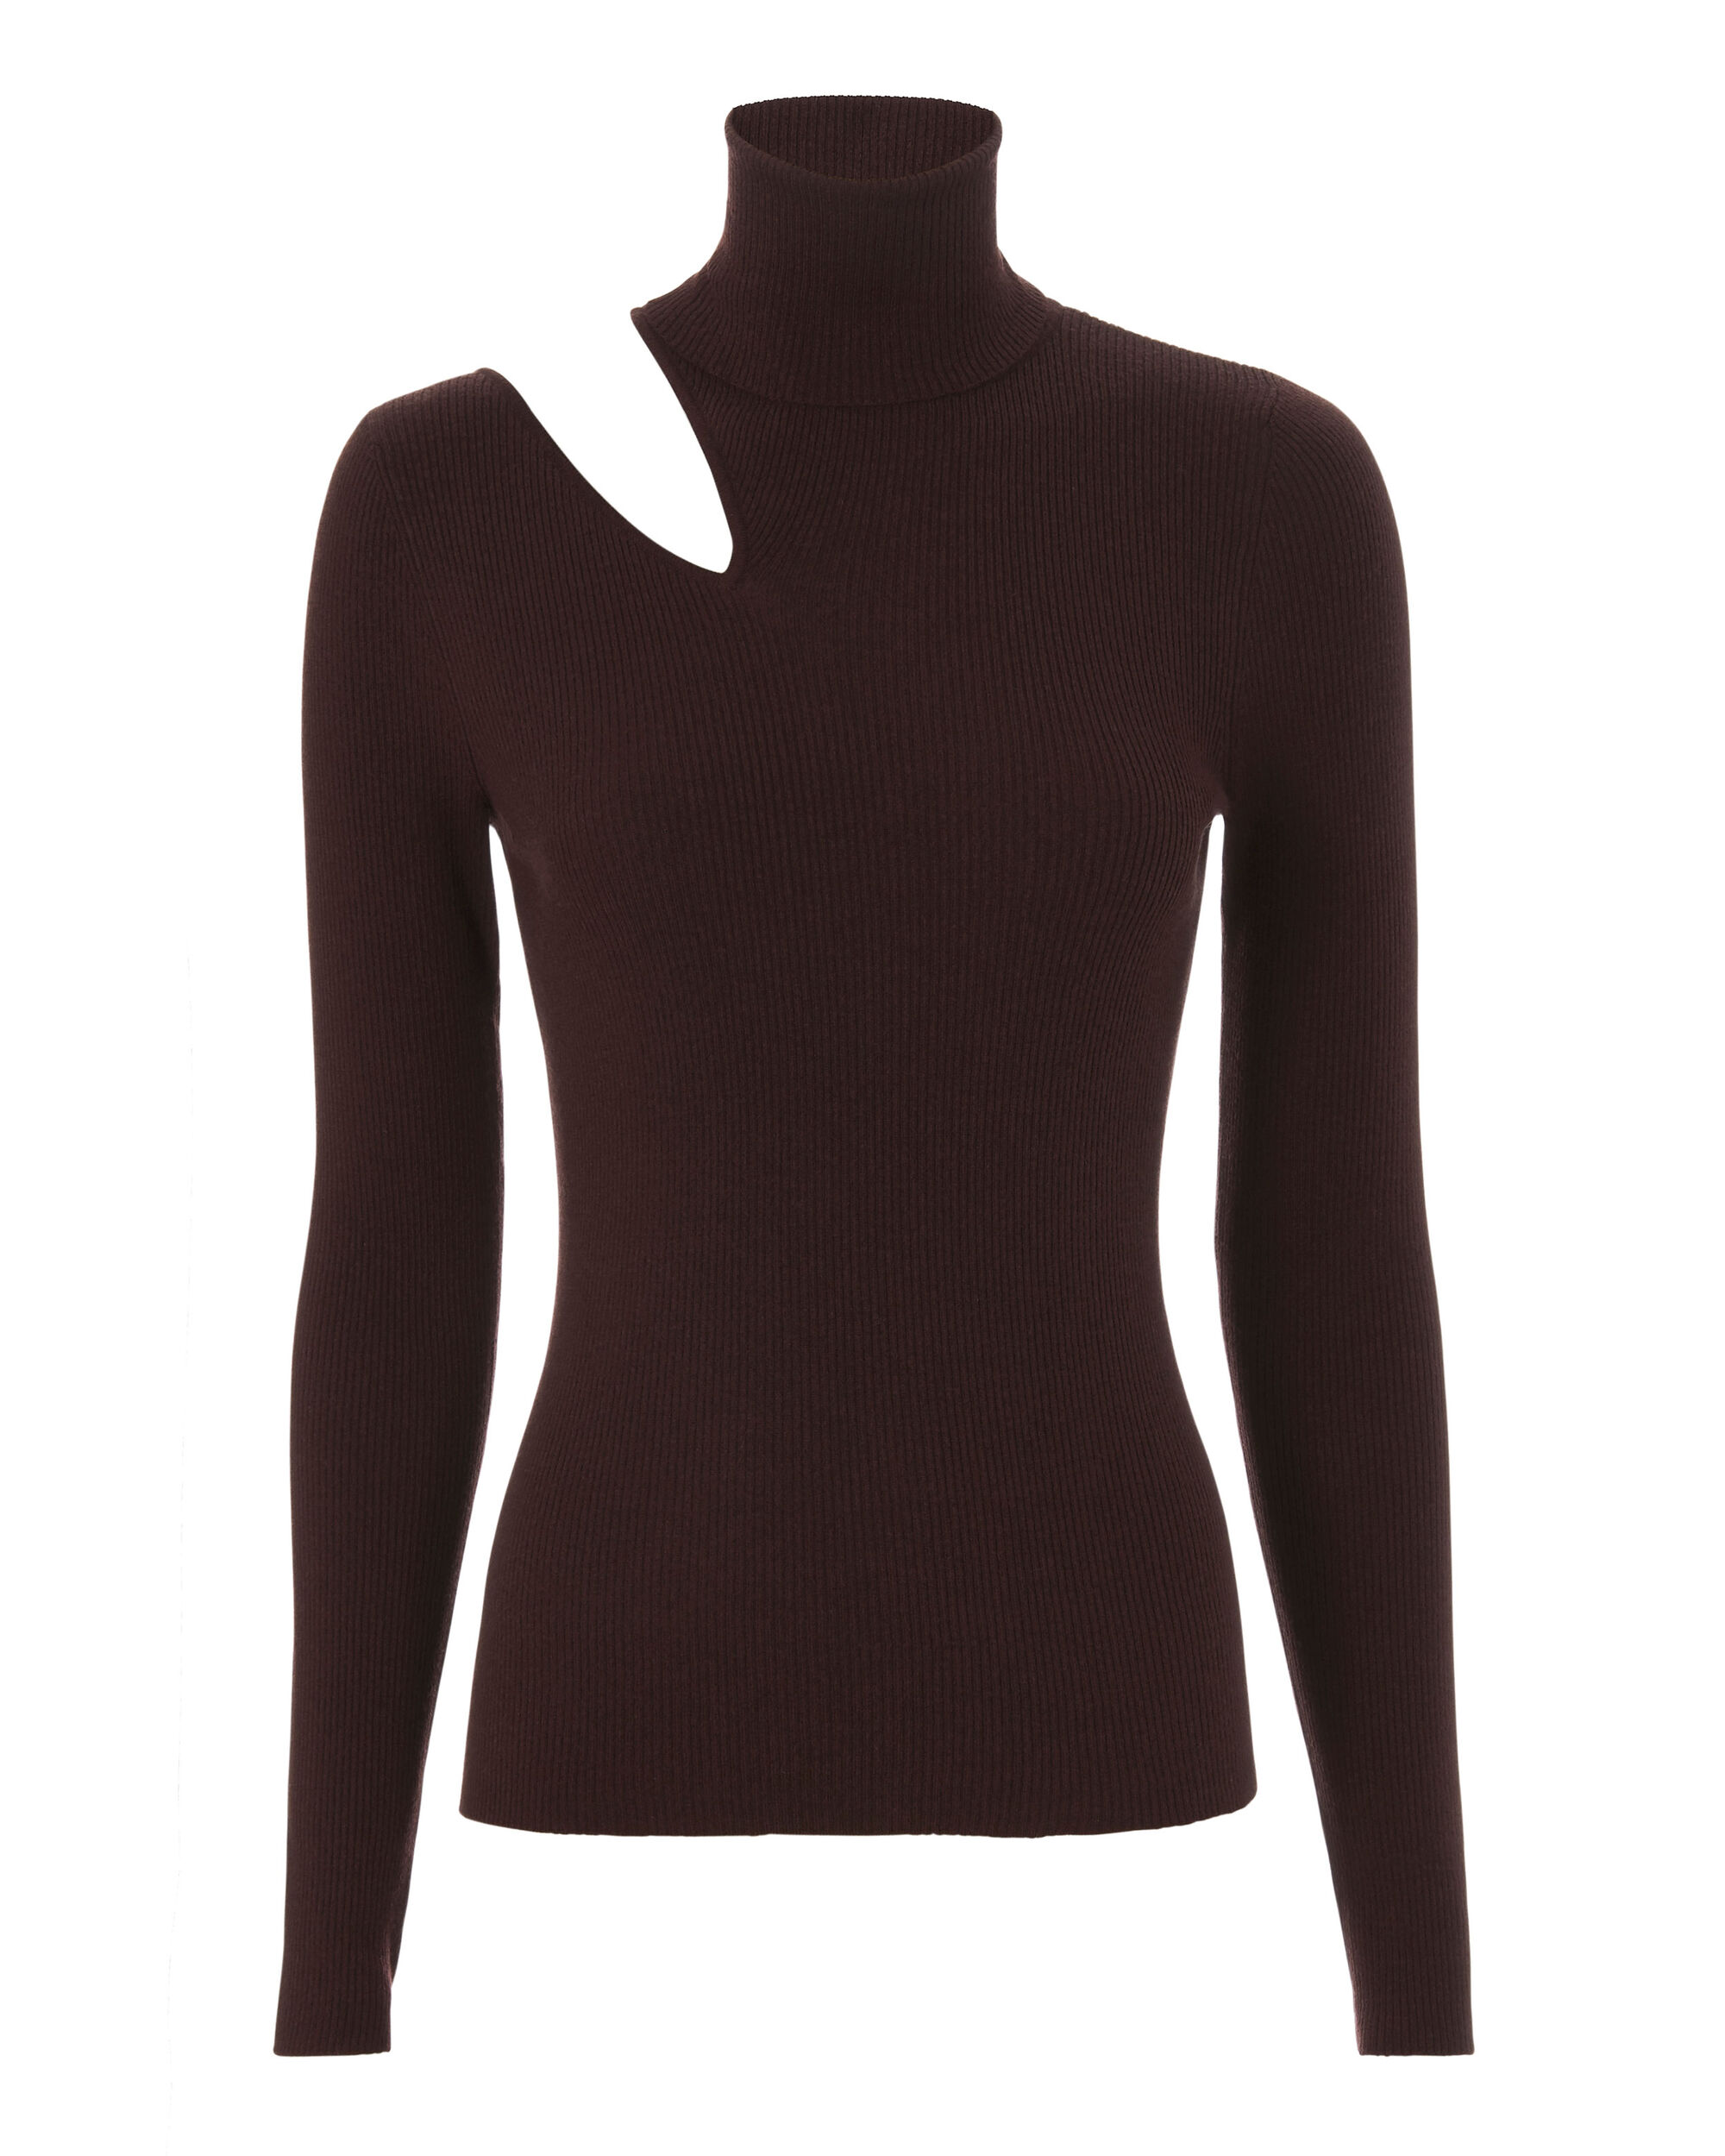 Kara Cutout Knit Sweater, PURPLE, hi-res